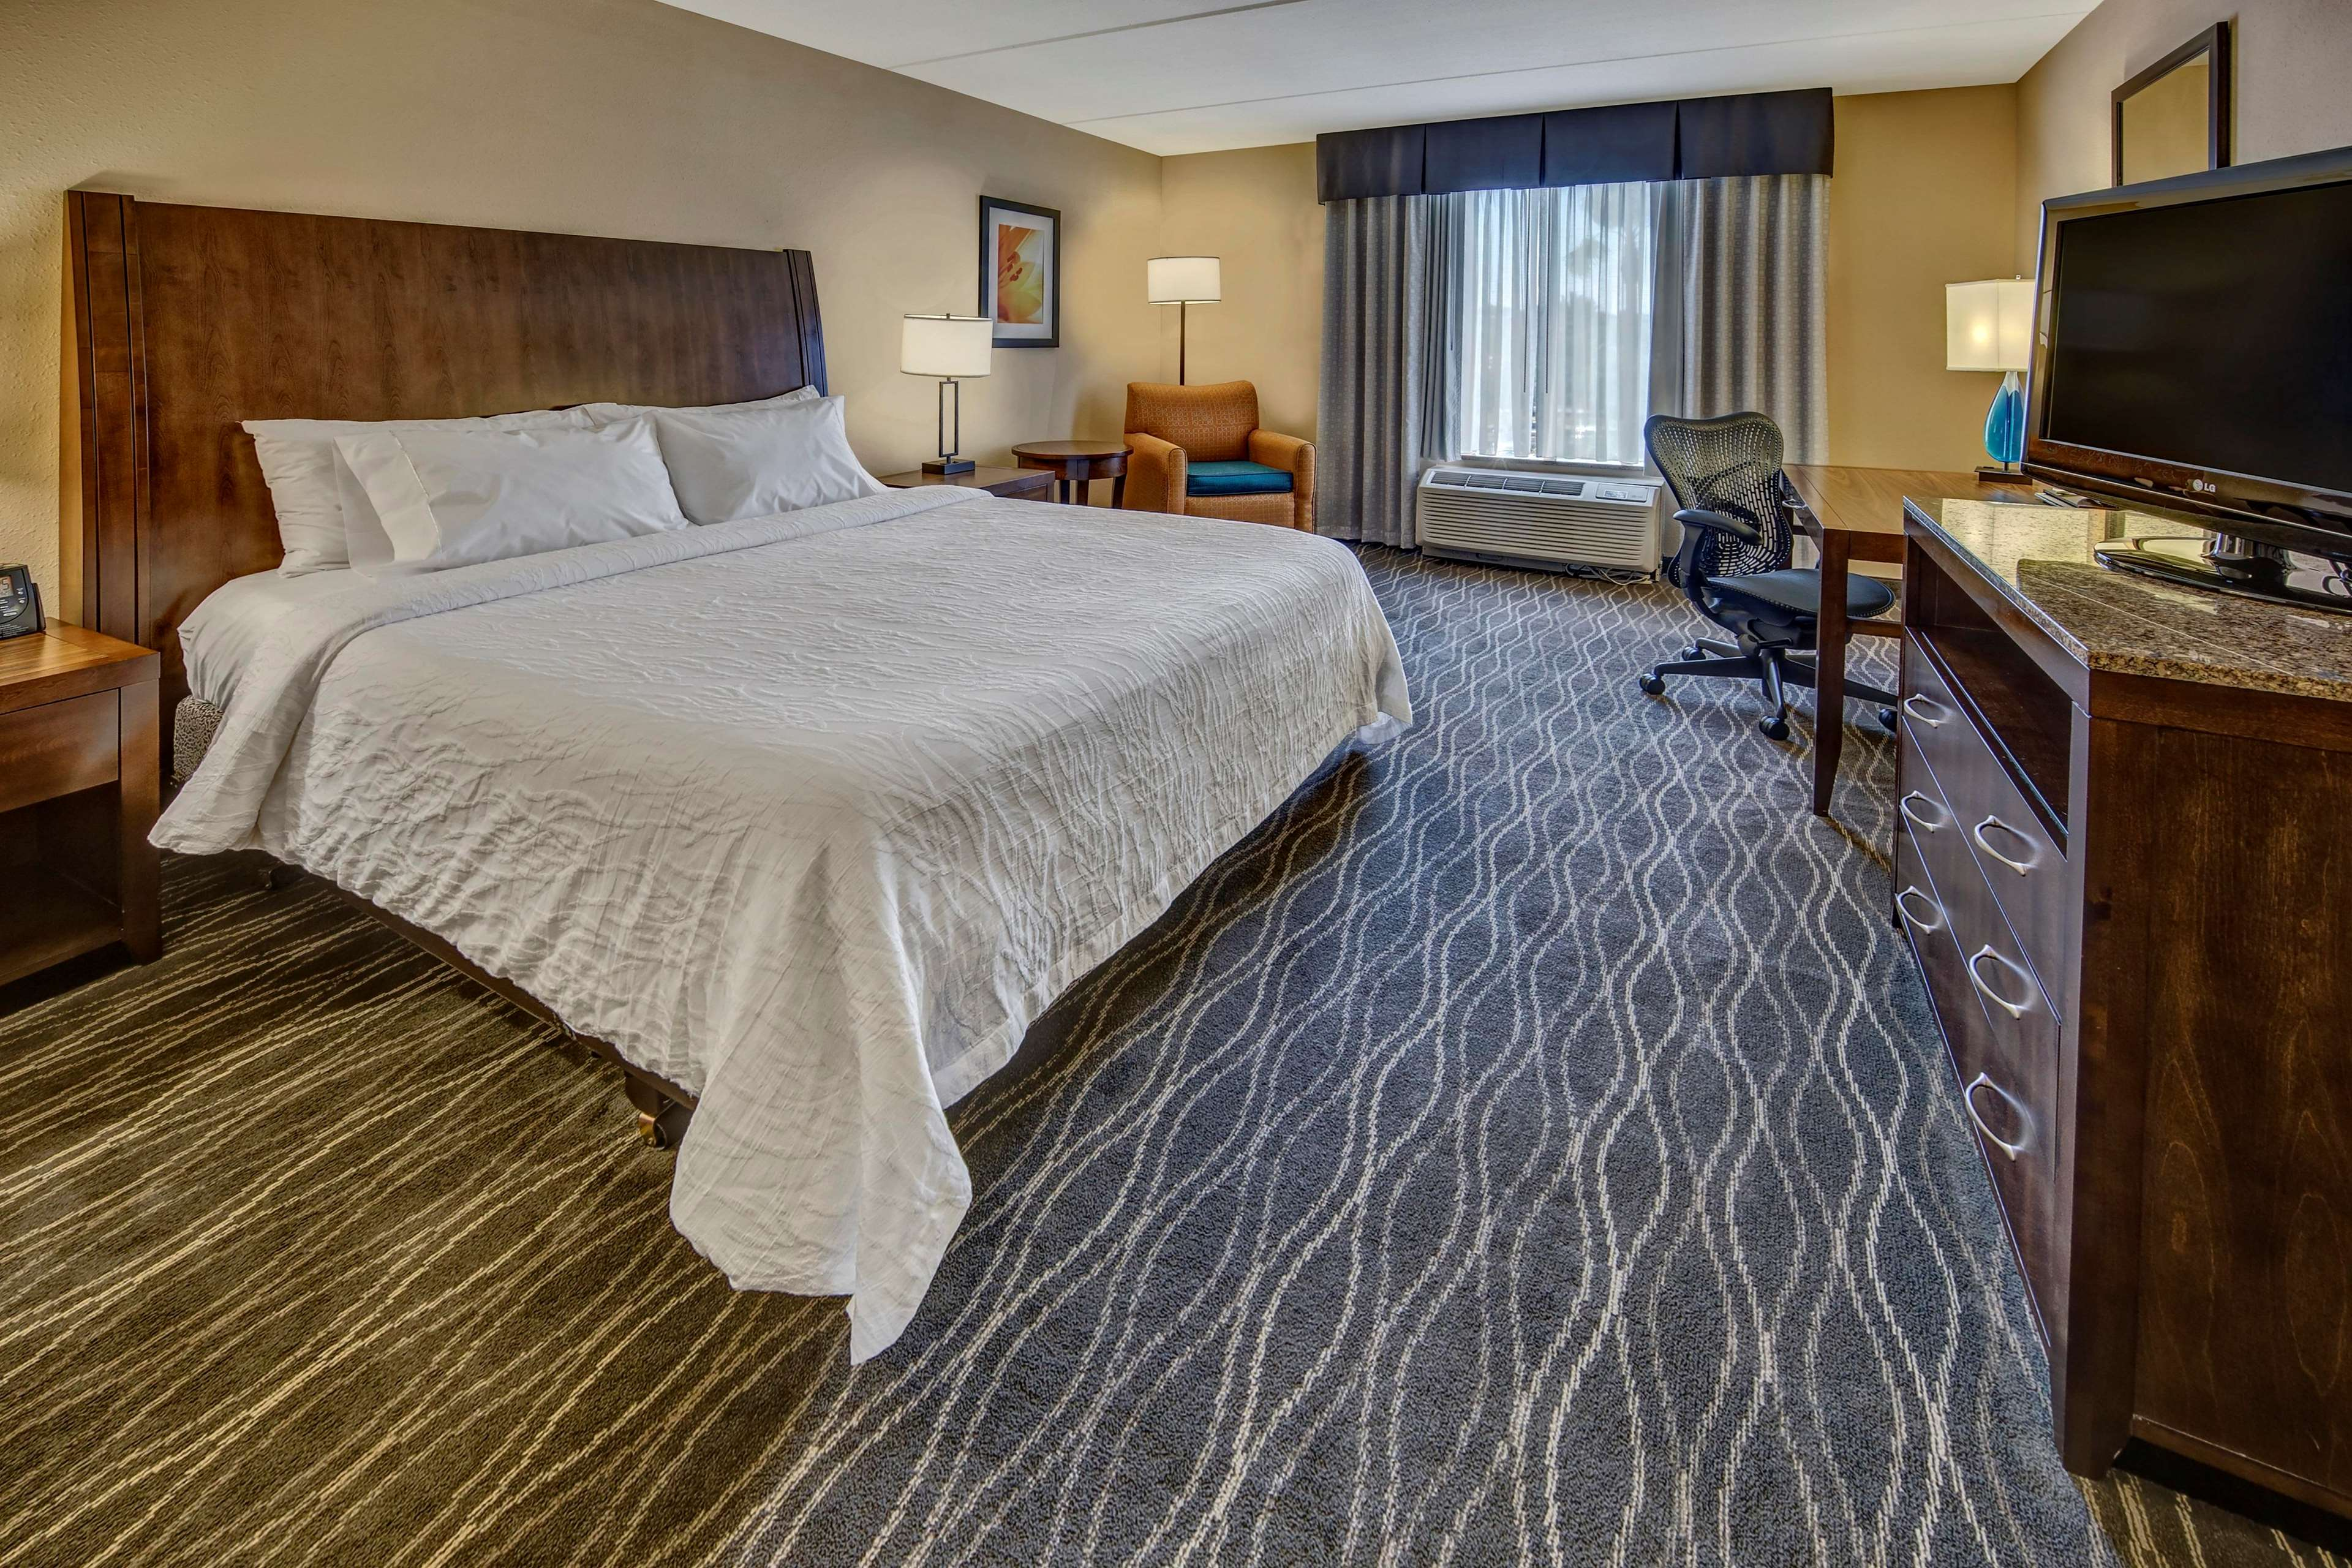 Hilton Garden Inn Houston/Bush Intercontinental Airport image 22